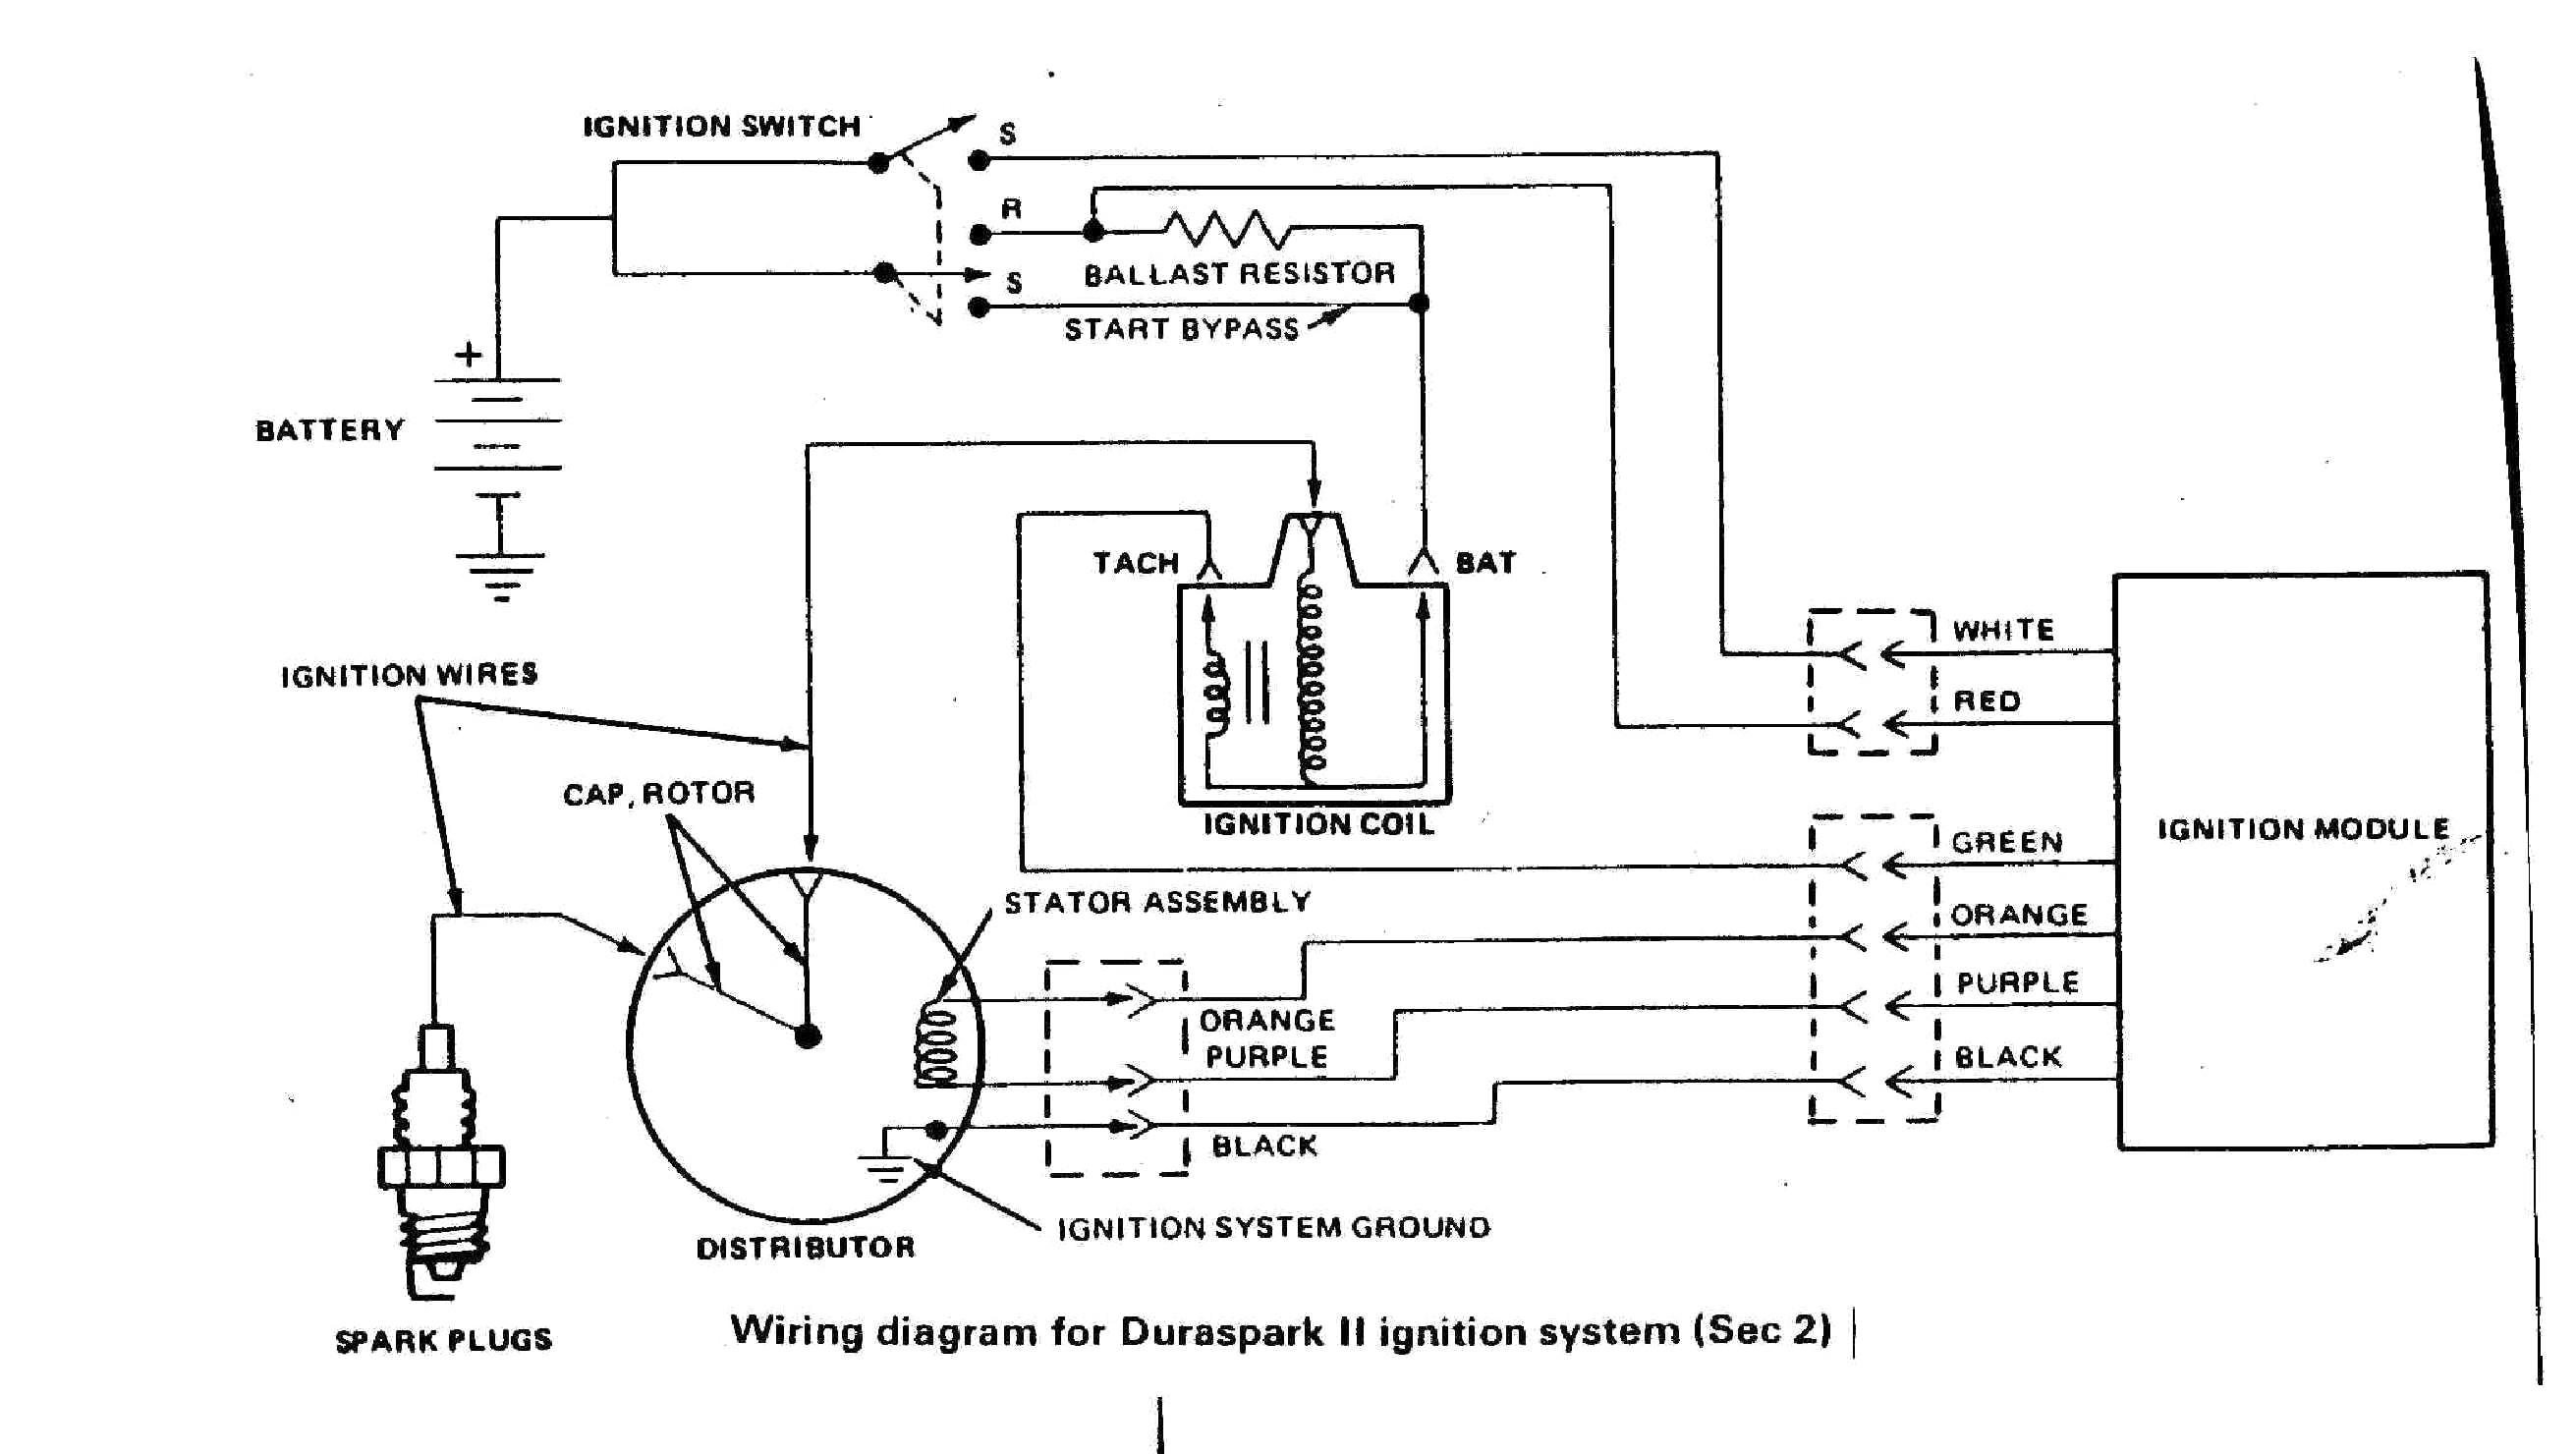 ford think ignition wiring ford tractor ignition switch wiring diagram | free wiring ... 8n ford tractor ignition wiring diagram #13